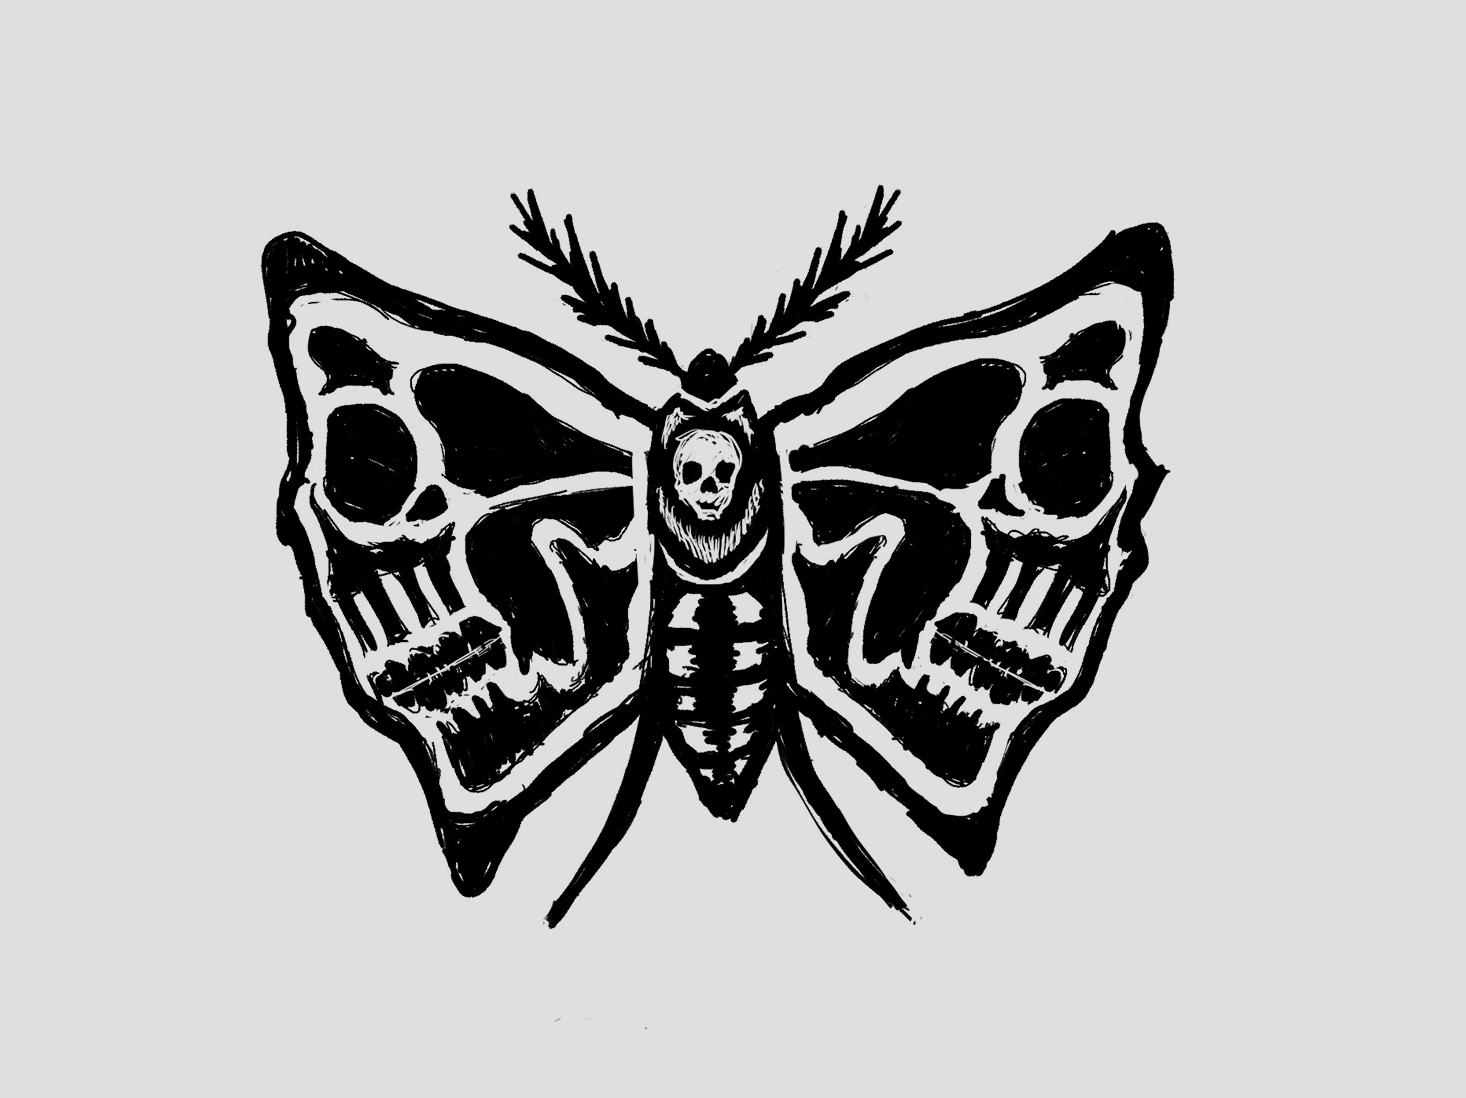 Moth Inlay (Sketch) insects hand drawn skull death moth inlay illustration drawing sketch